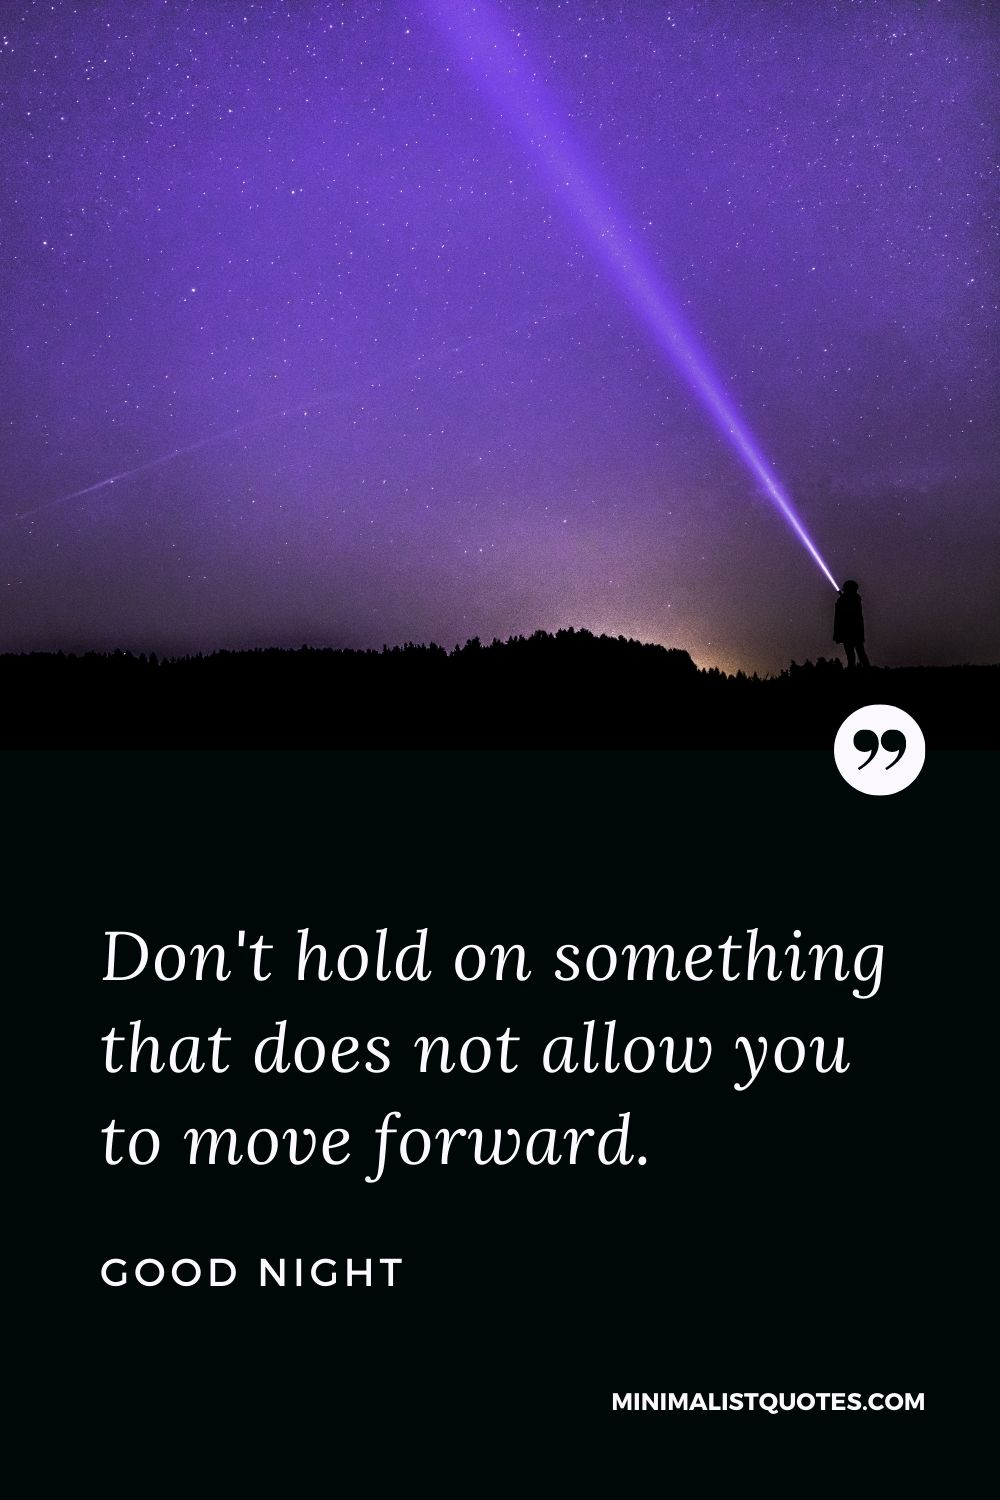 Good Night Wishes - Don't hold on something that does not allow you to move forward.